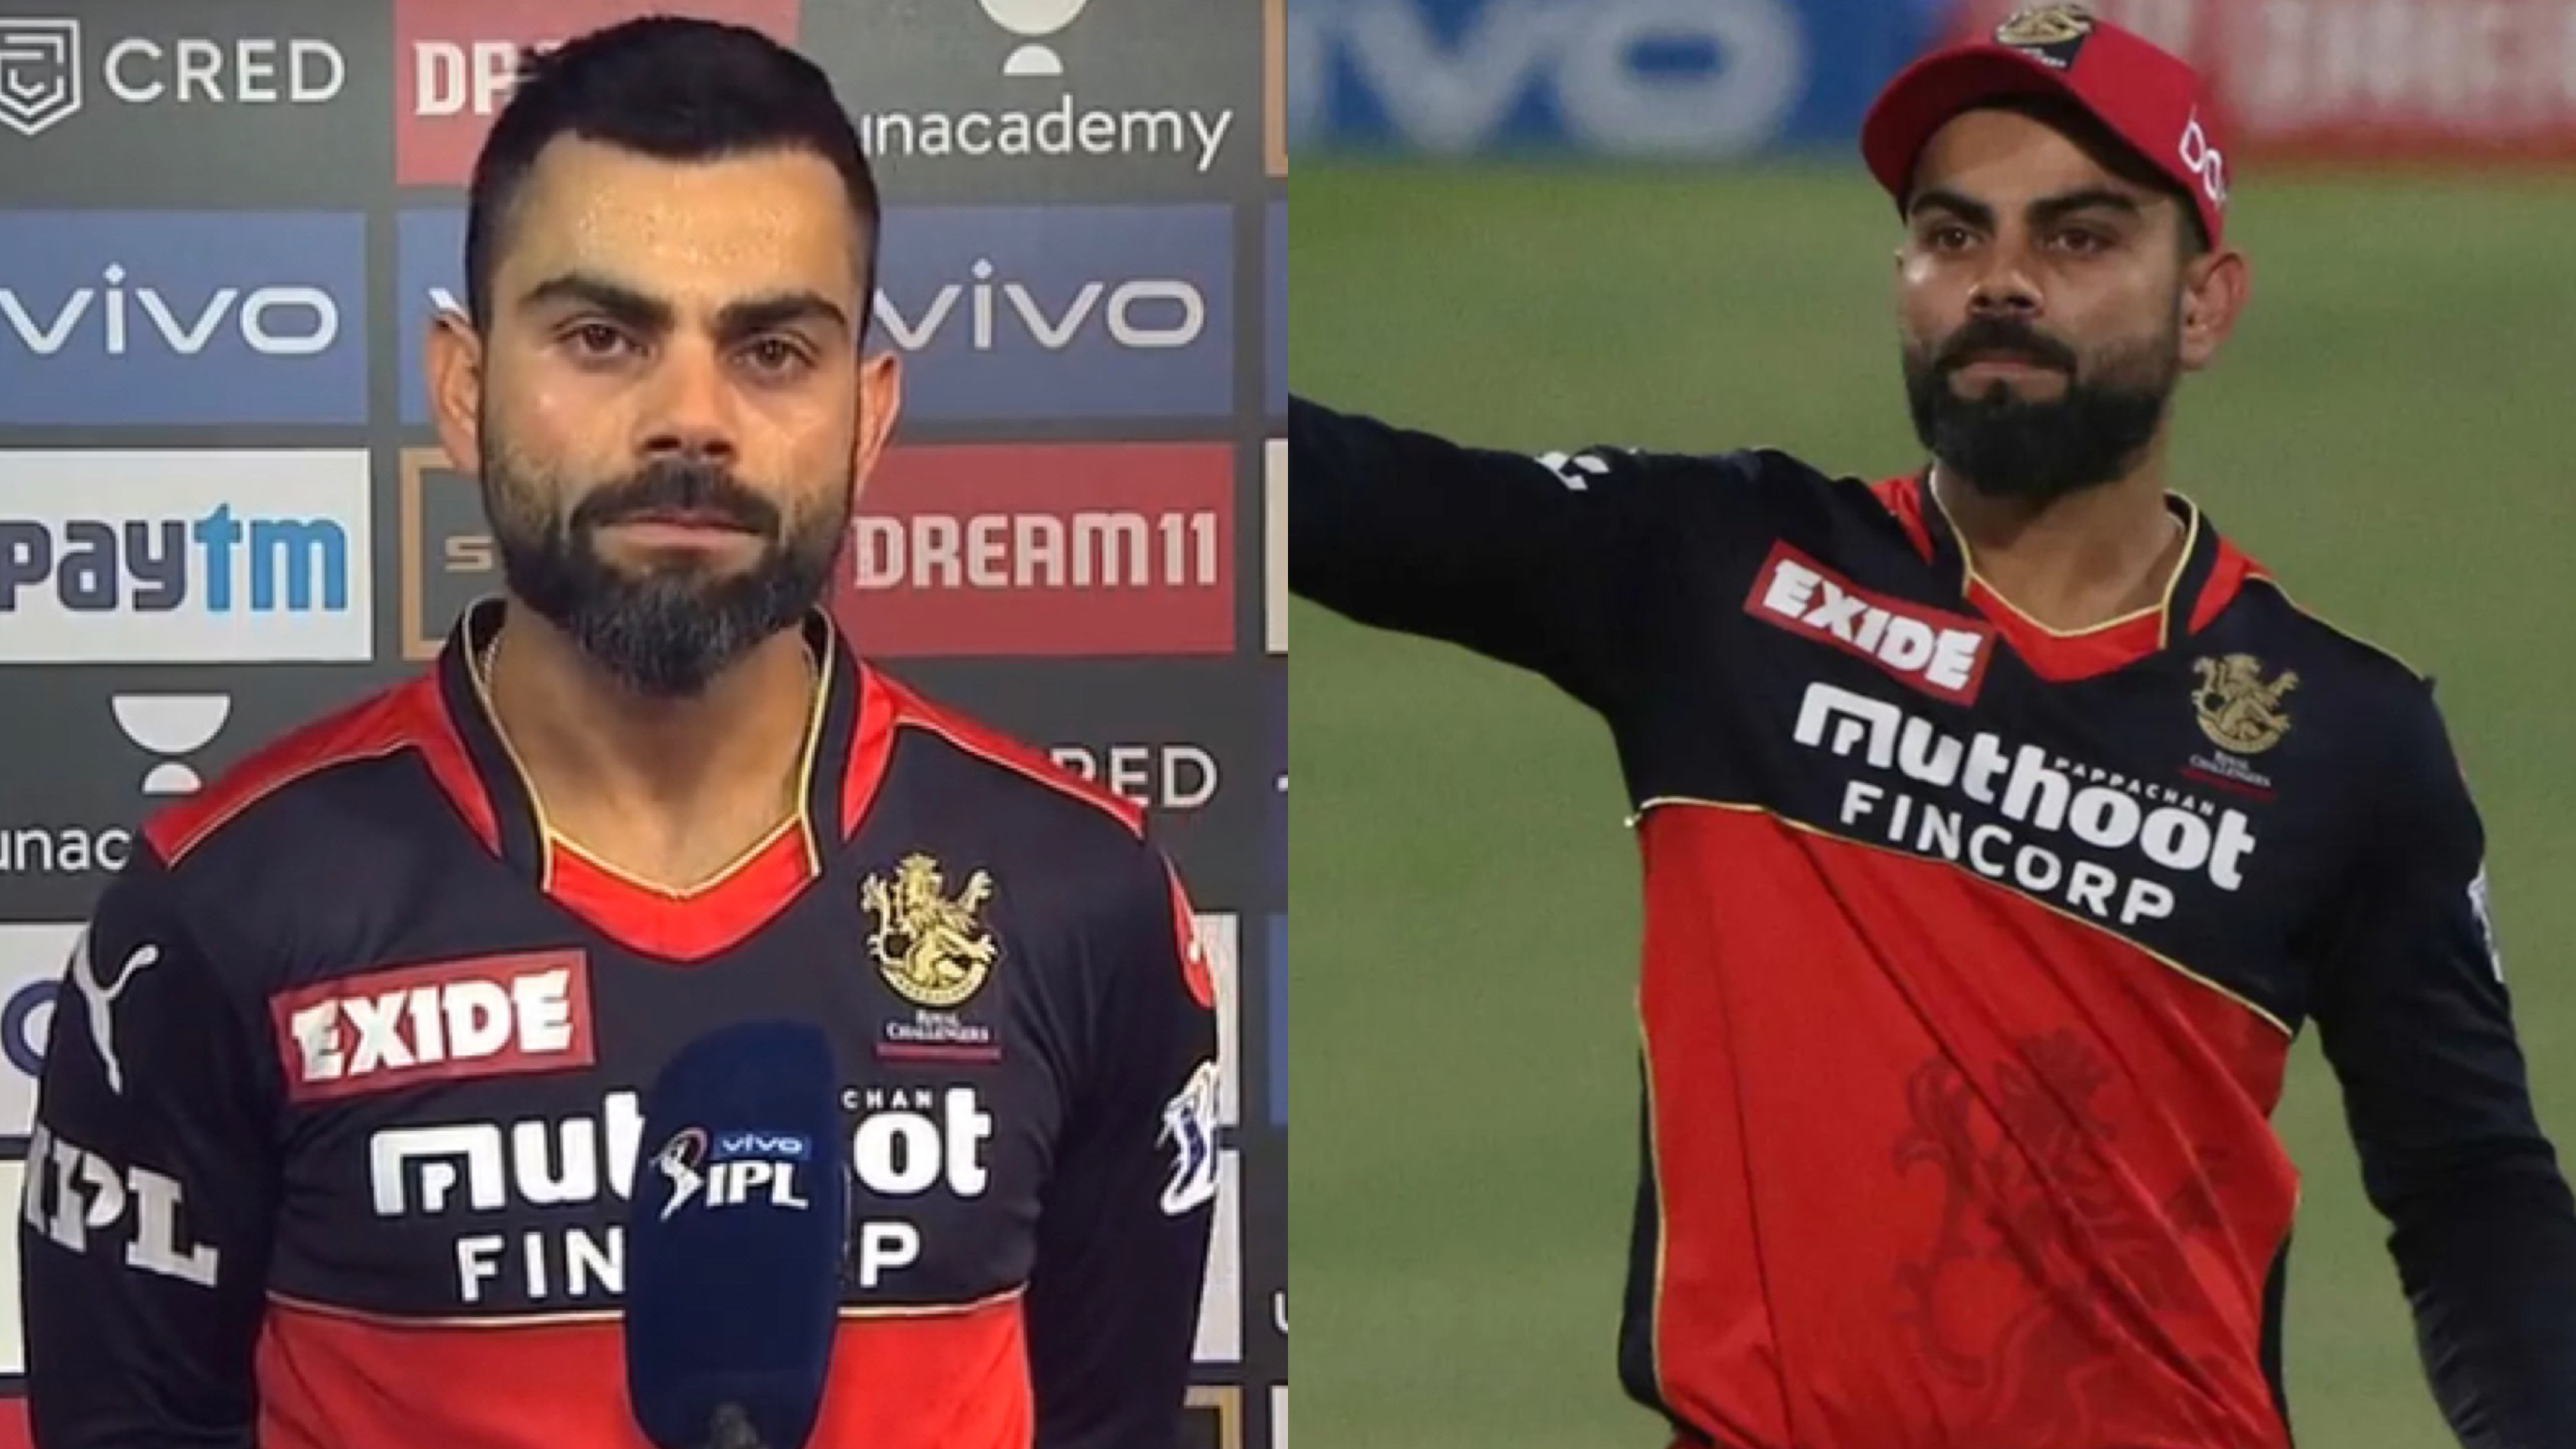 IPL 2021: WATCH - 'I have given 120% to this franchise every time', says Virat Kohli as he bids farewell to RCB captaincy